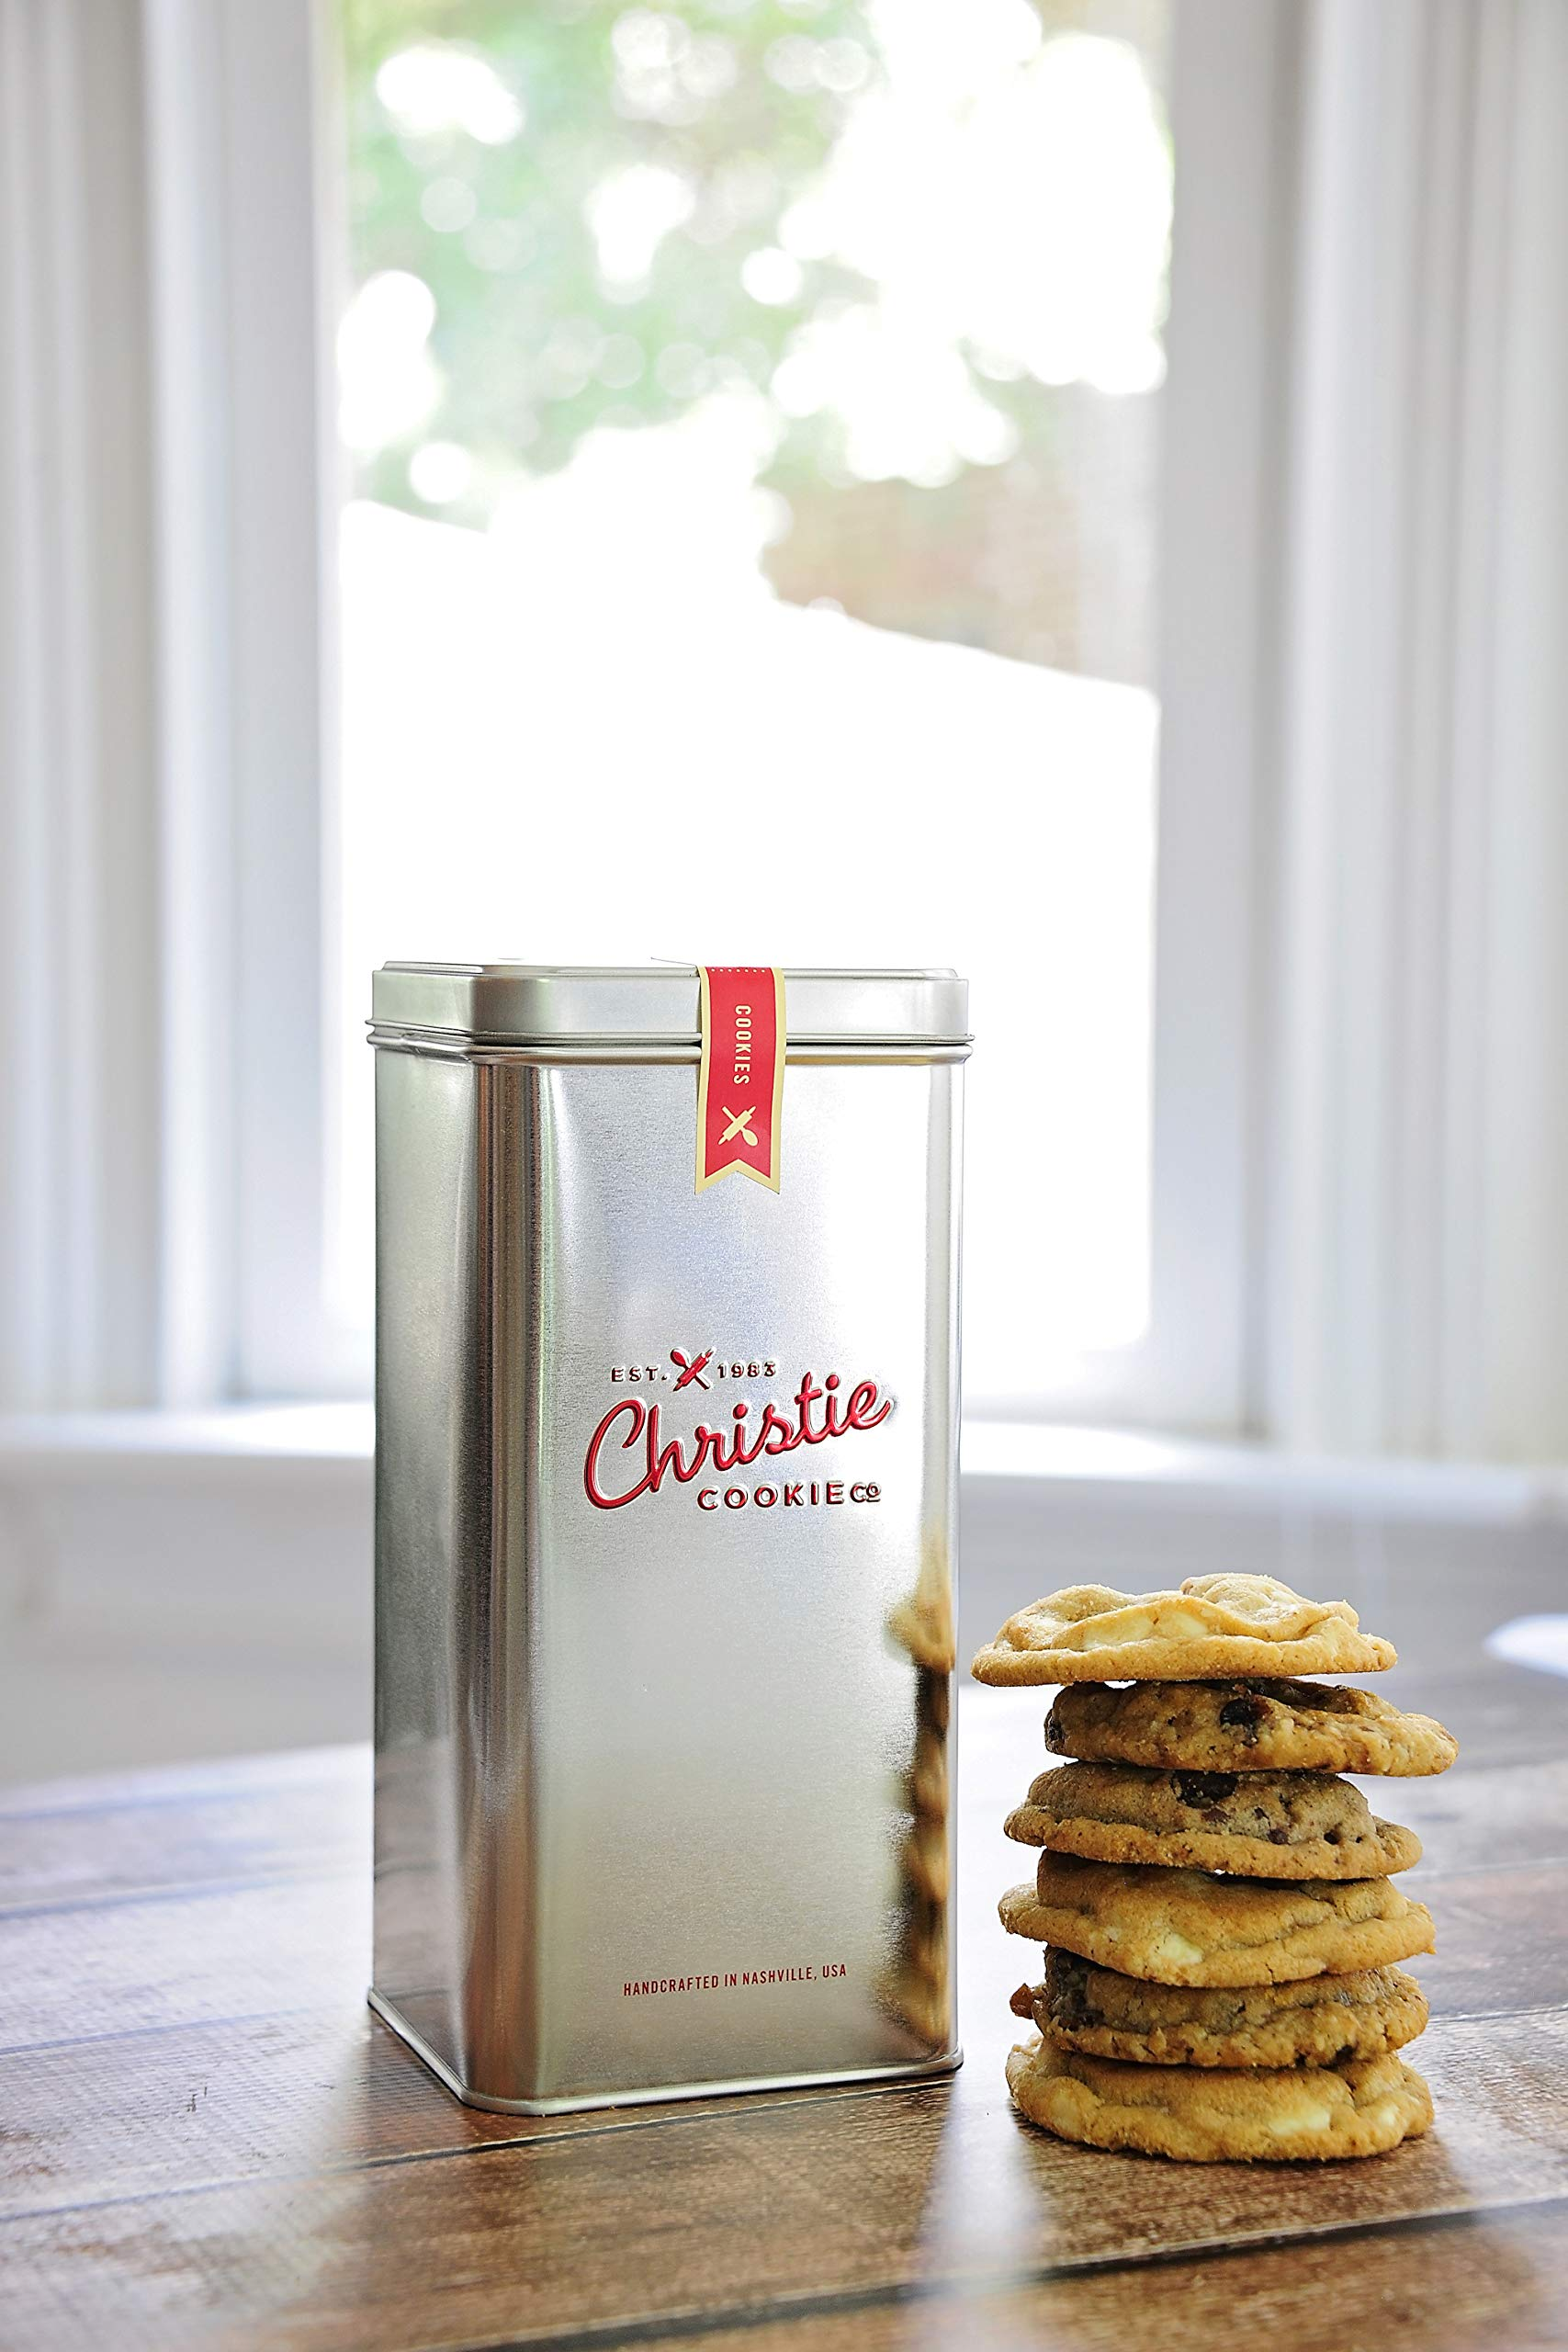 Christie Cookies, Gourmet Assorted Cookies, 12 Fresh-Baked Cookies in Silver Tin, No Added Preservatives, 100% Real Butter, Holiday & Corporate Gift Tin, Birthday Gift Idea for Men & Women by Christie Cookie Co. (Image #1)